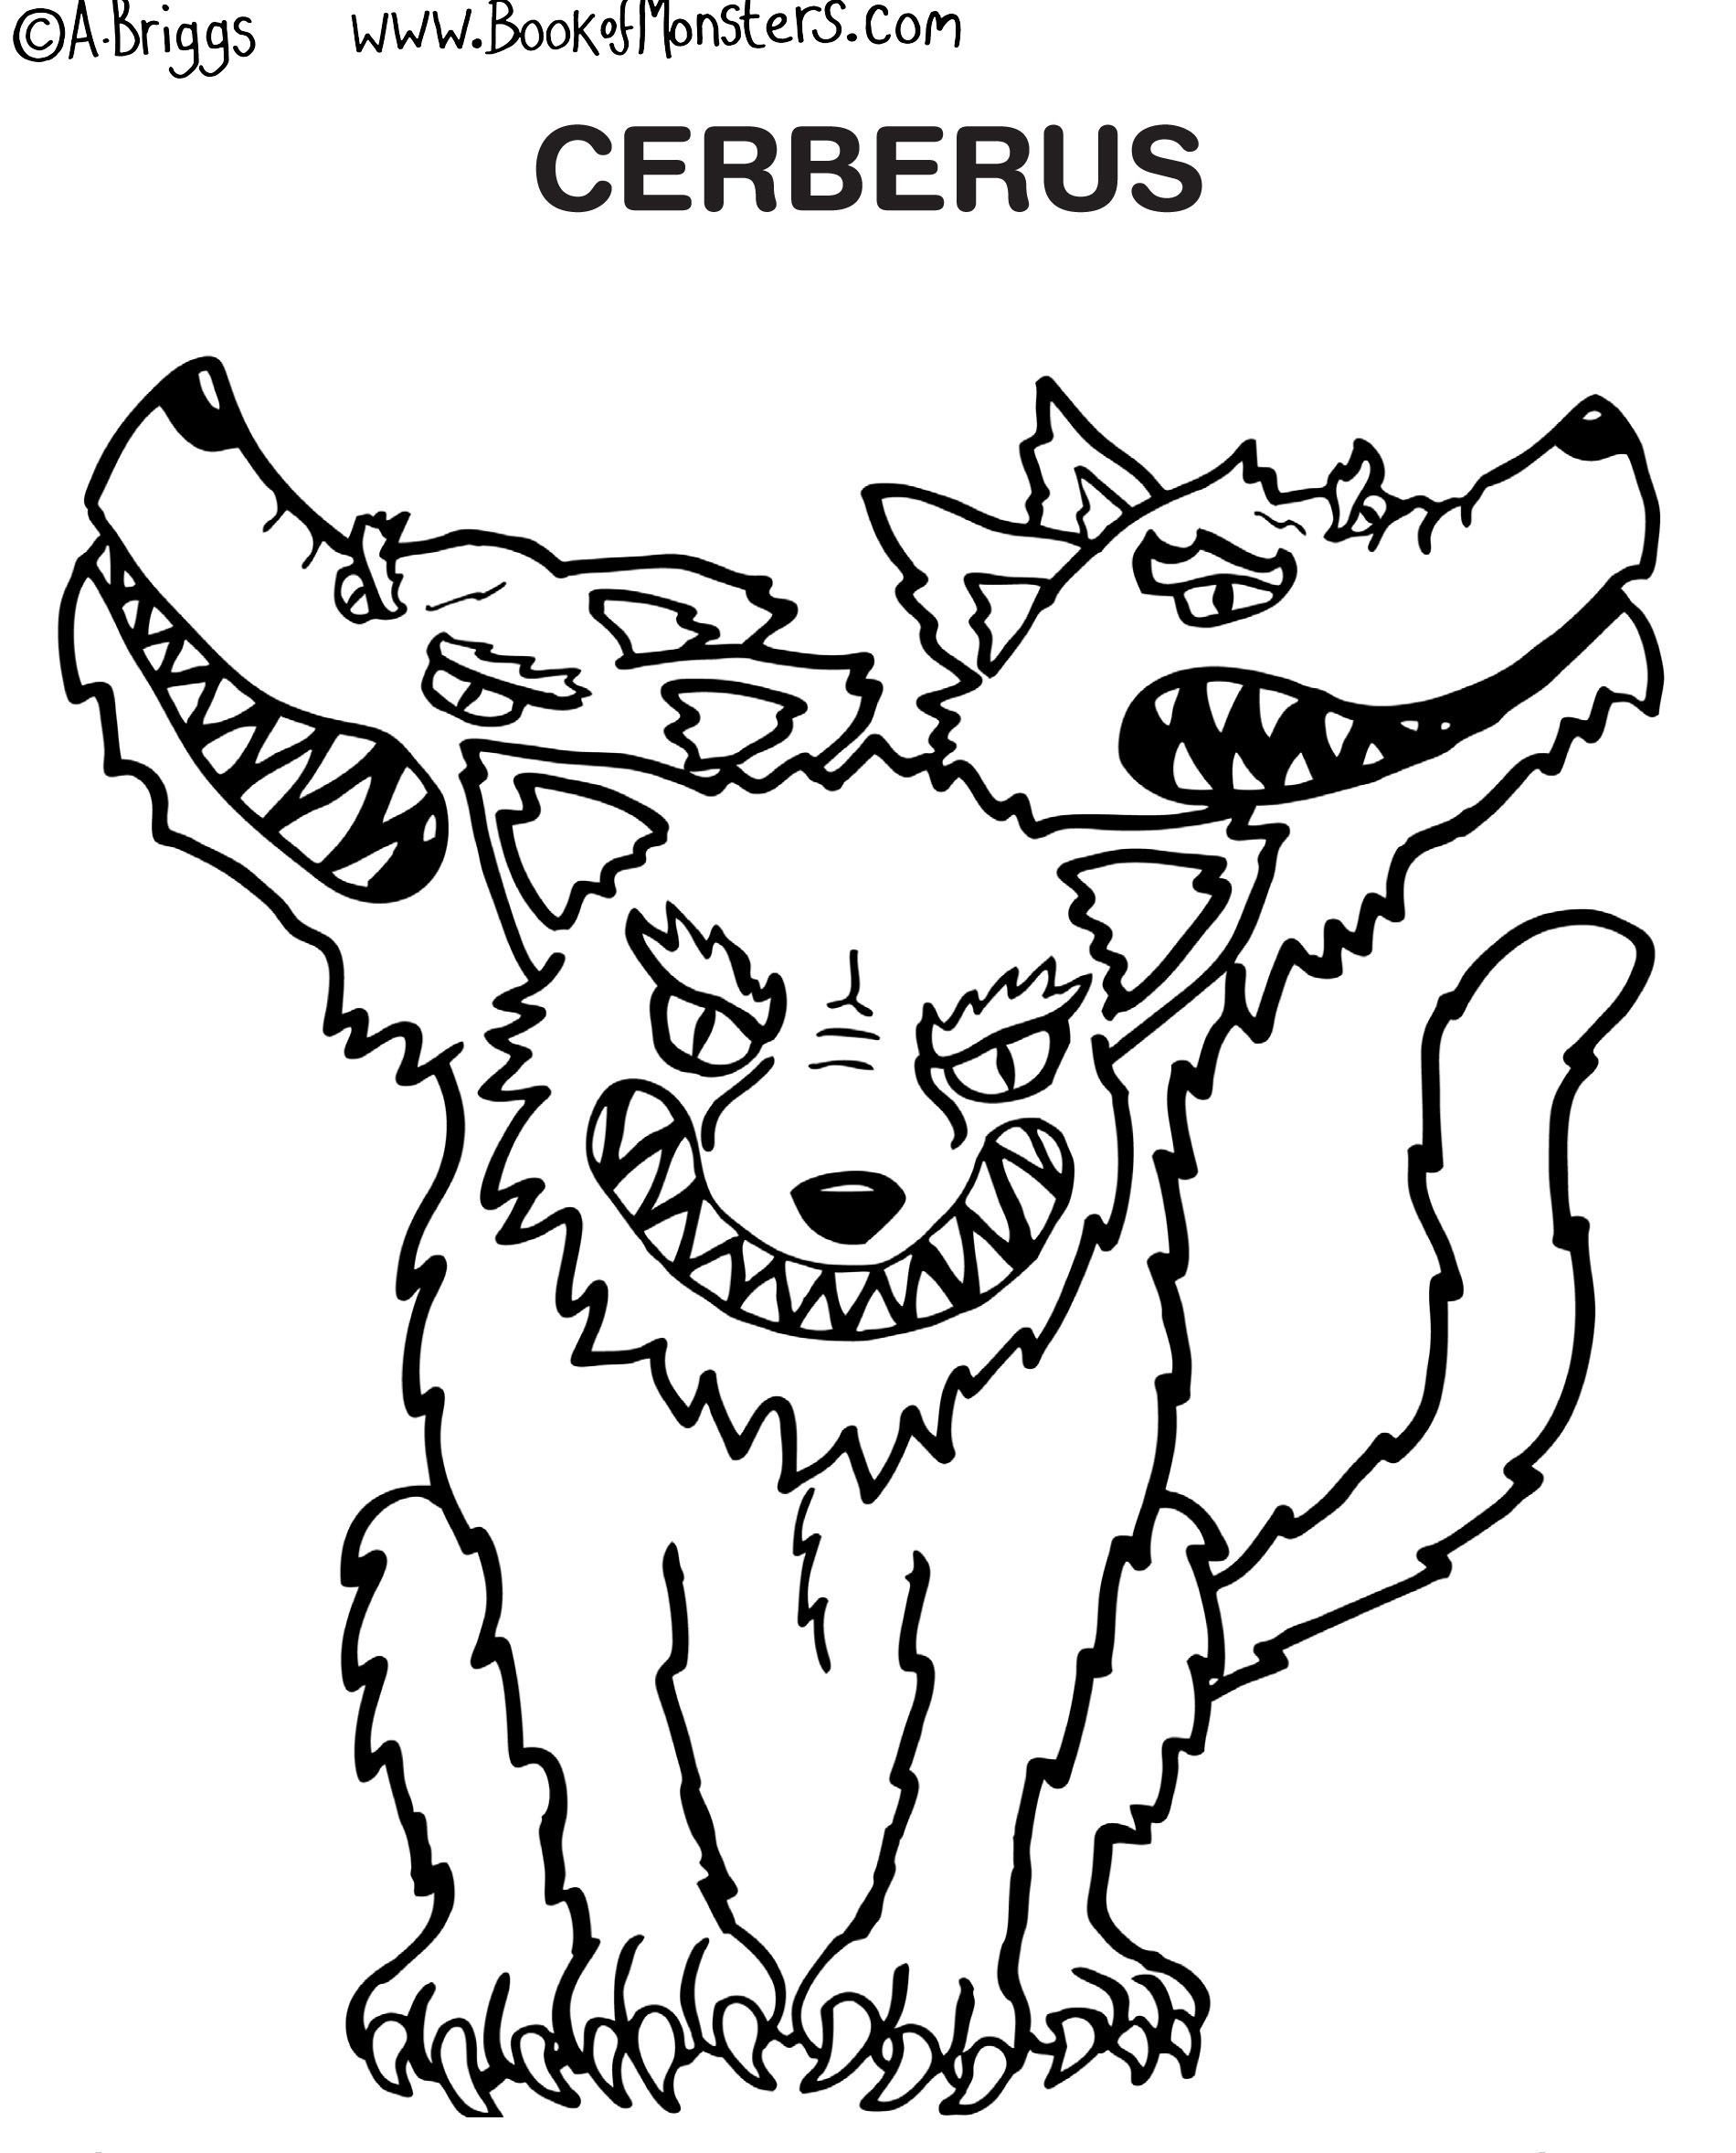 greek gods coloring pages for kids | Book of Monsters coloring page for kids-Cerberus | Greek ...